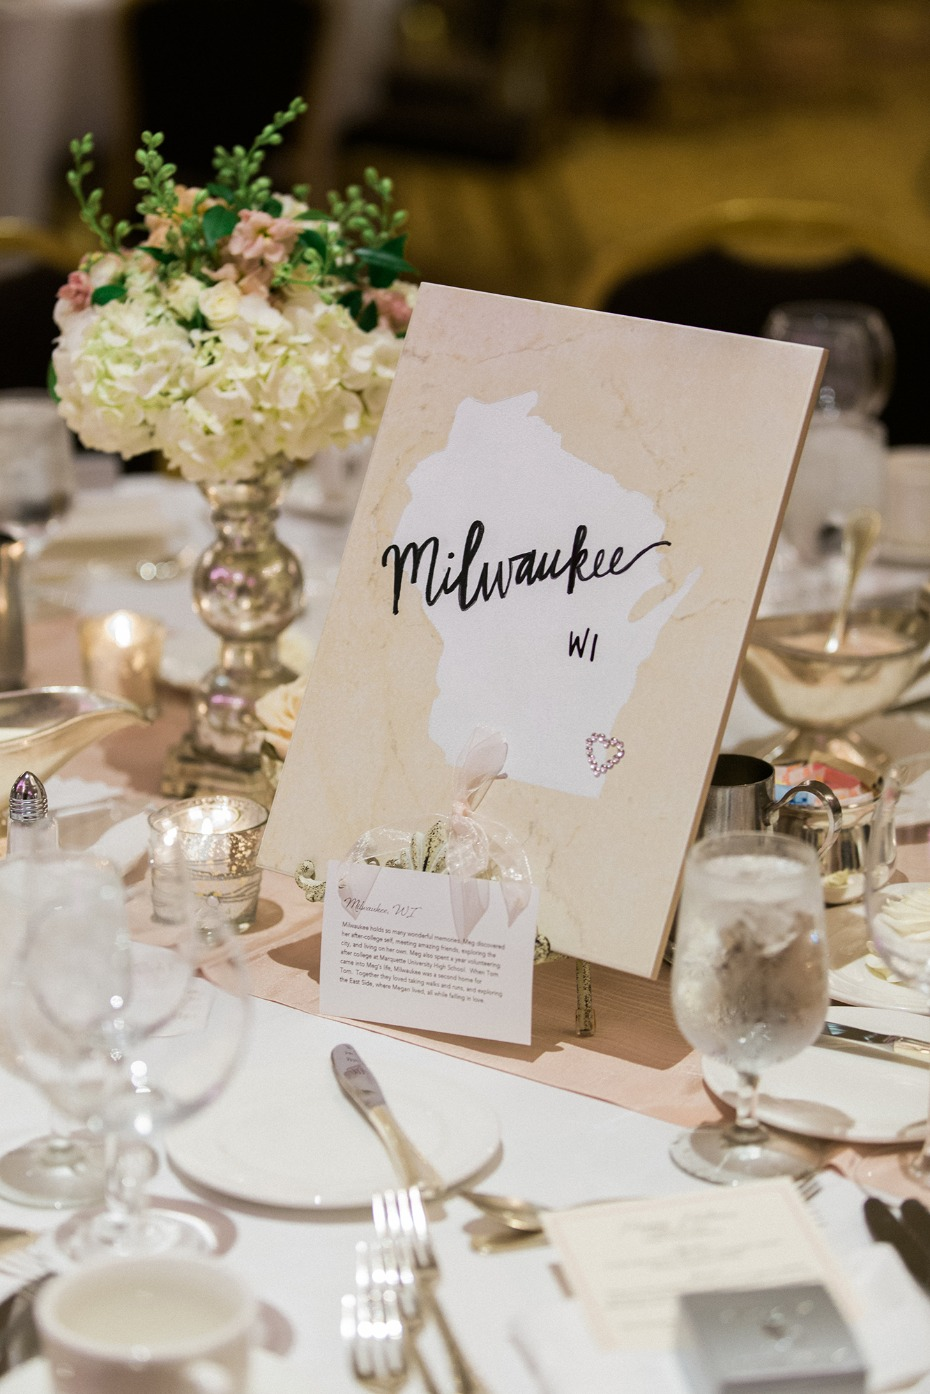 Destination table number idea